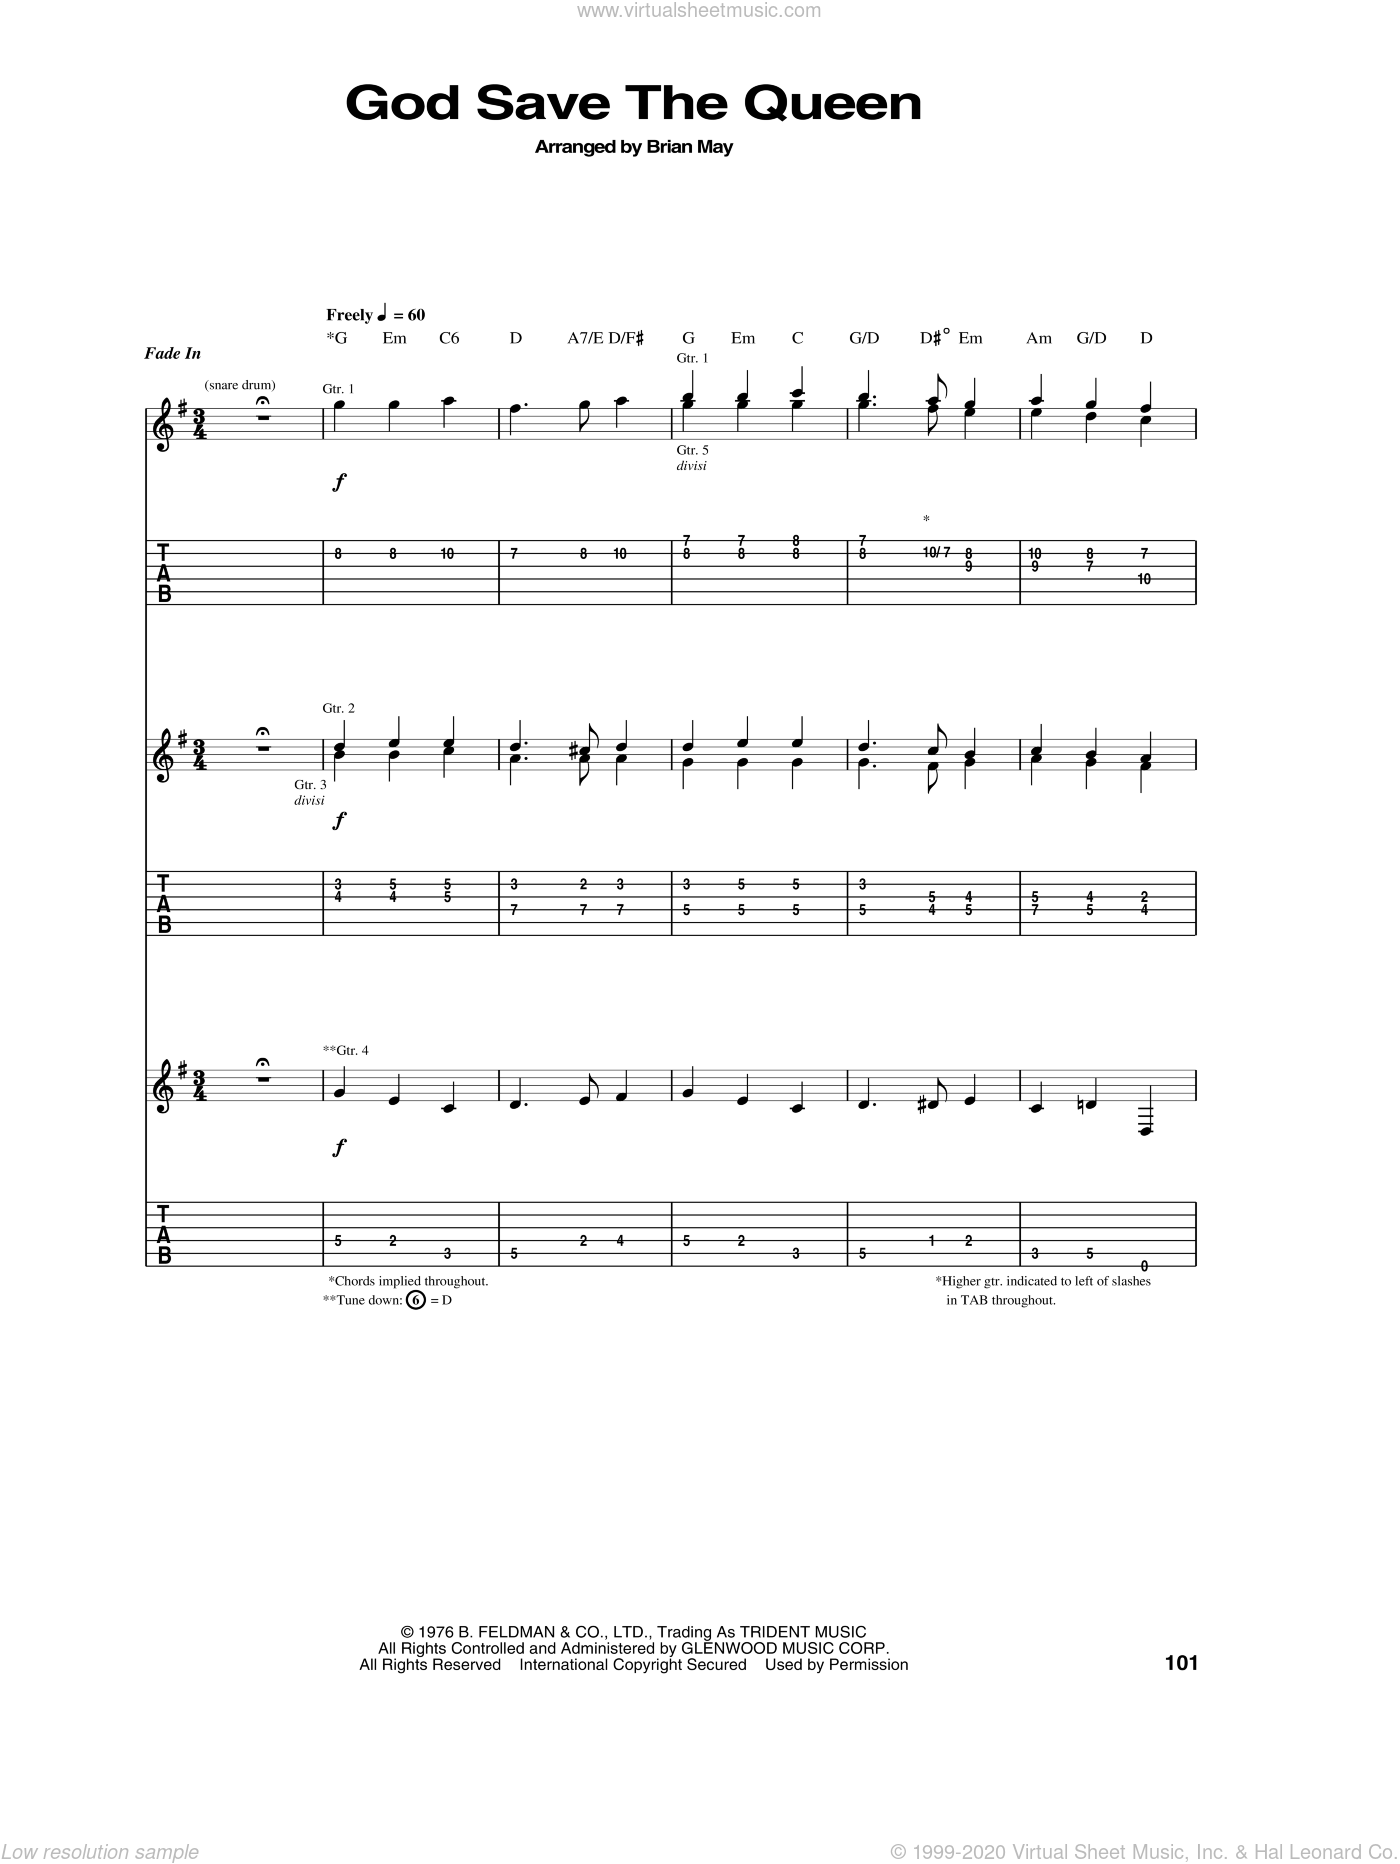 God Save The Queen sheet music for guitar (tablature) by Brian May